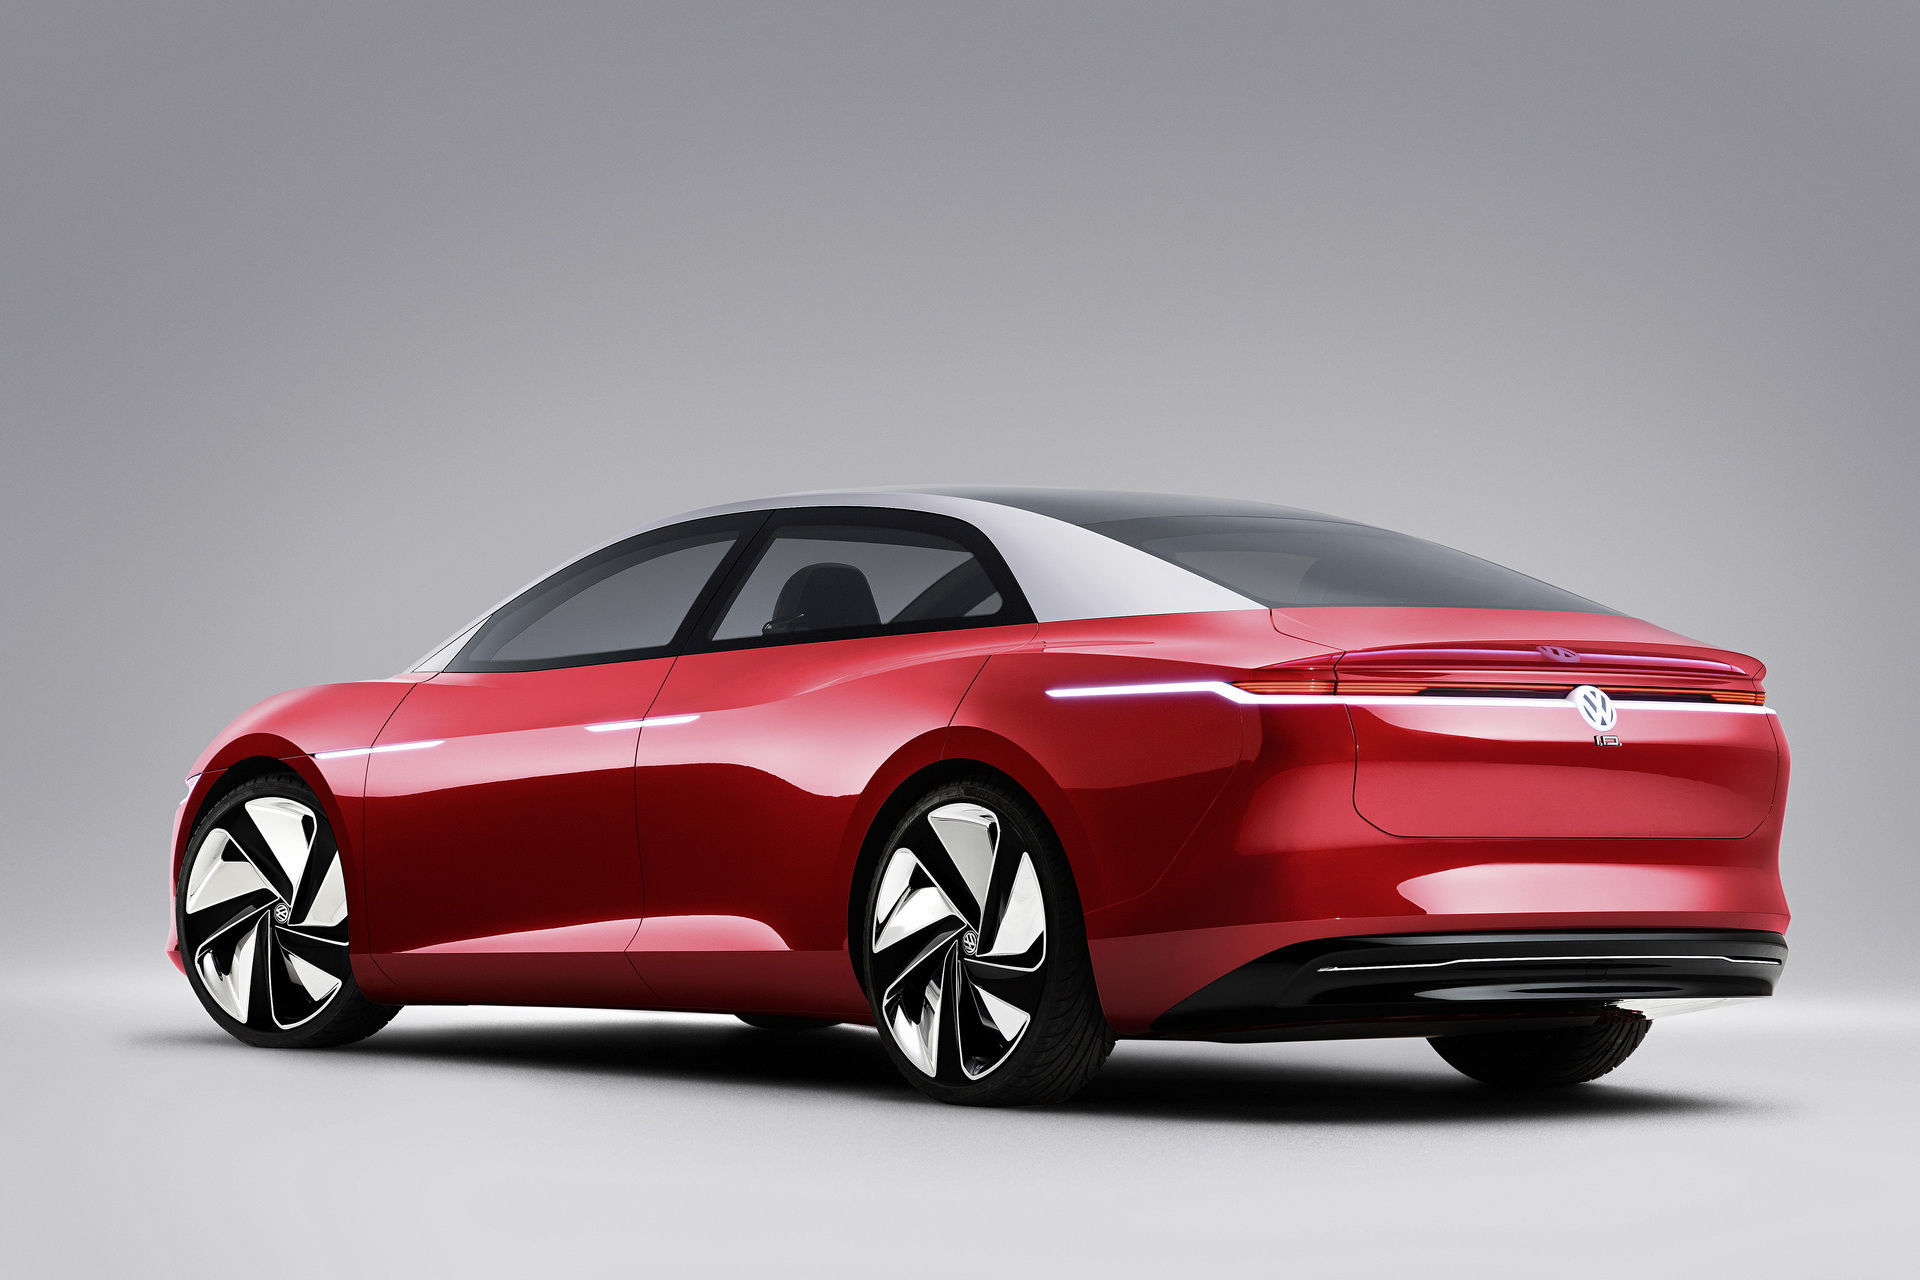 vw-id6-coming-2023-with-435-mile-range-3